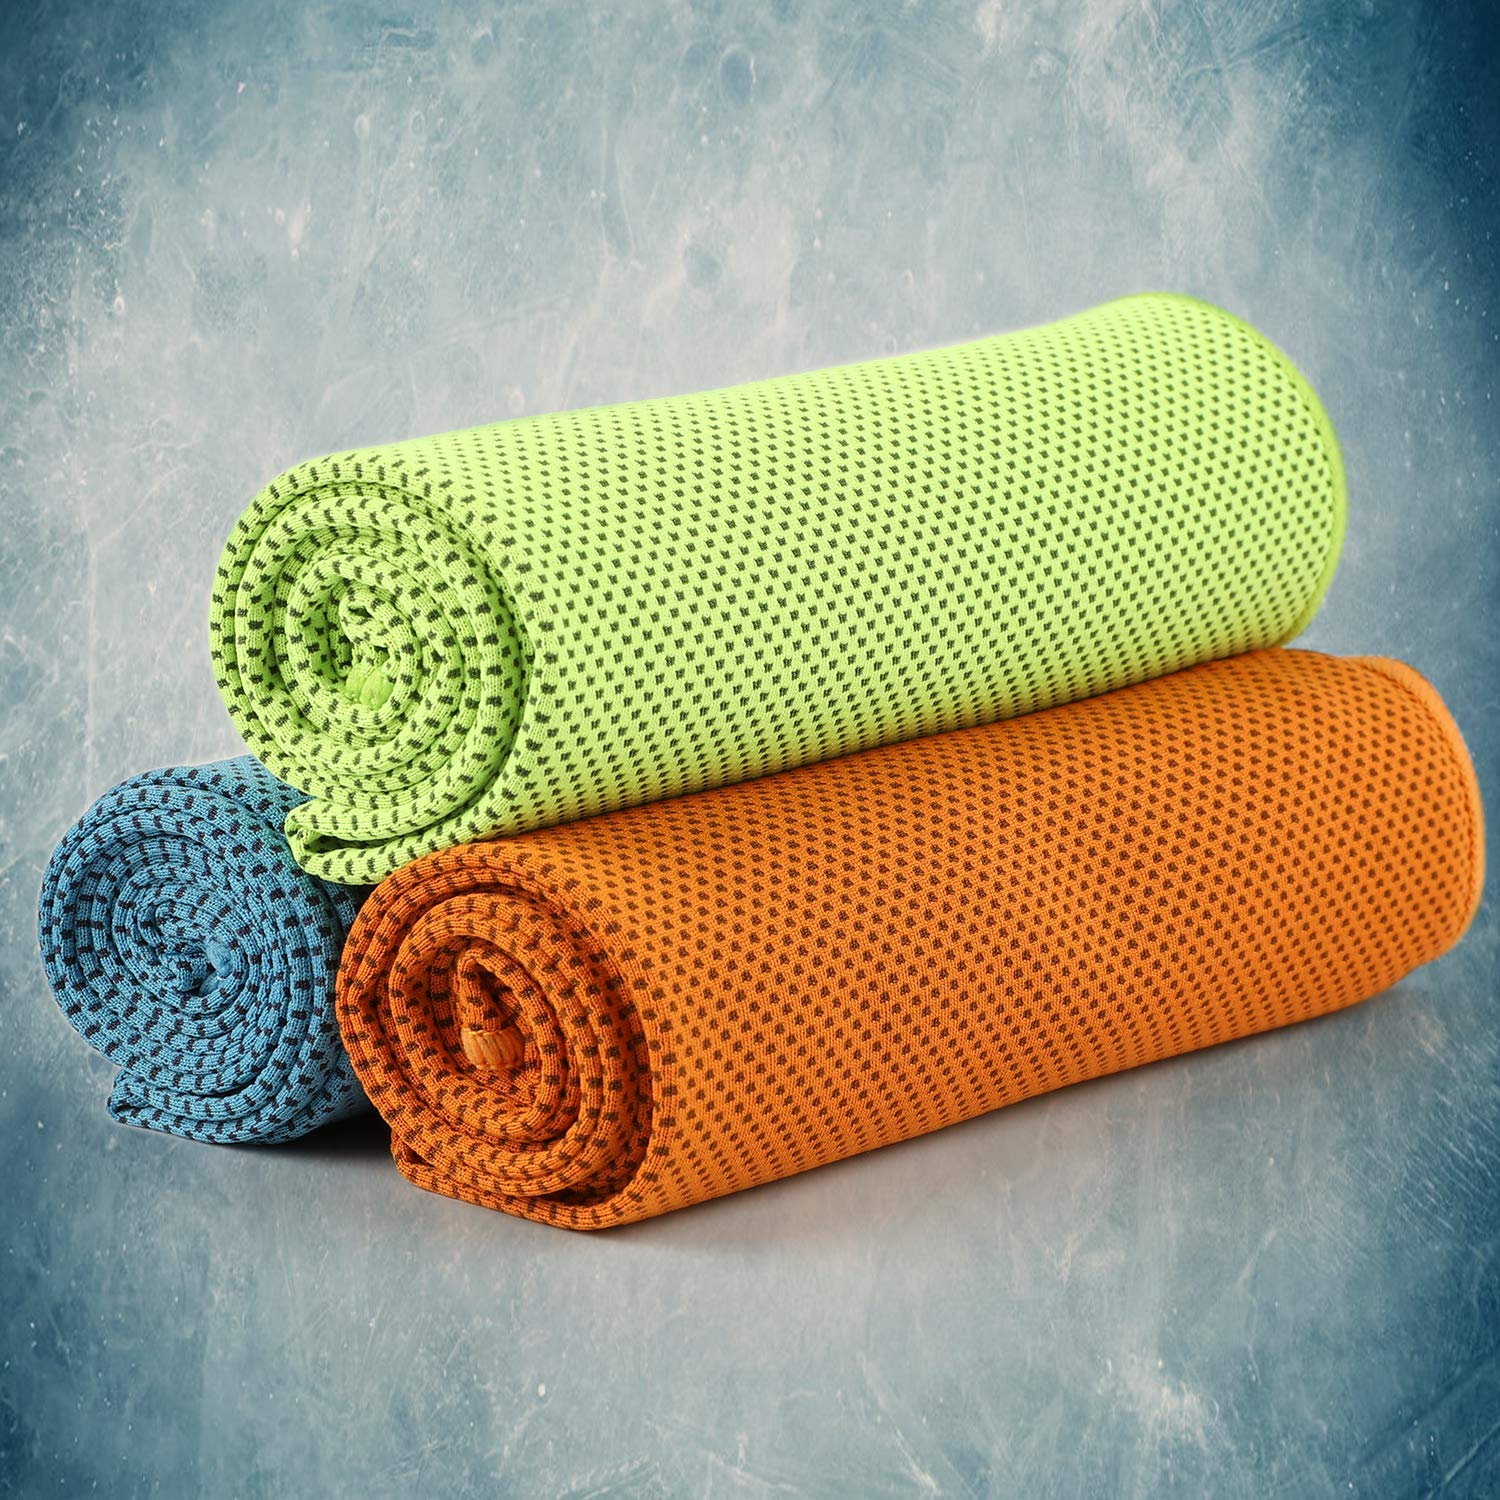 Travel Camping Fitness Yoga 5Pack Cooling Towels 40x 12 Running ...